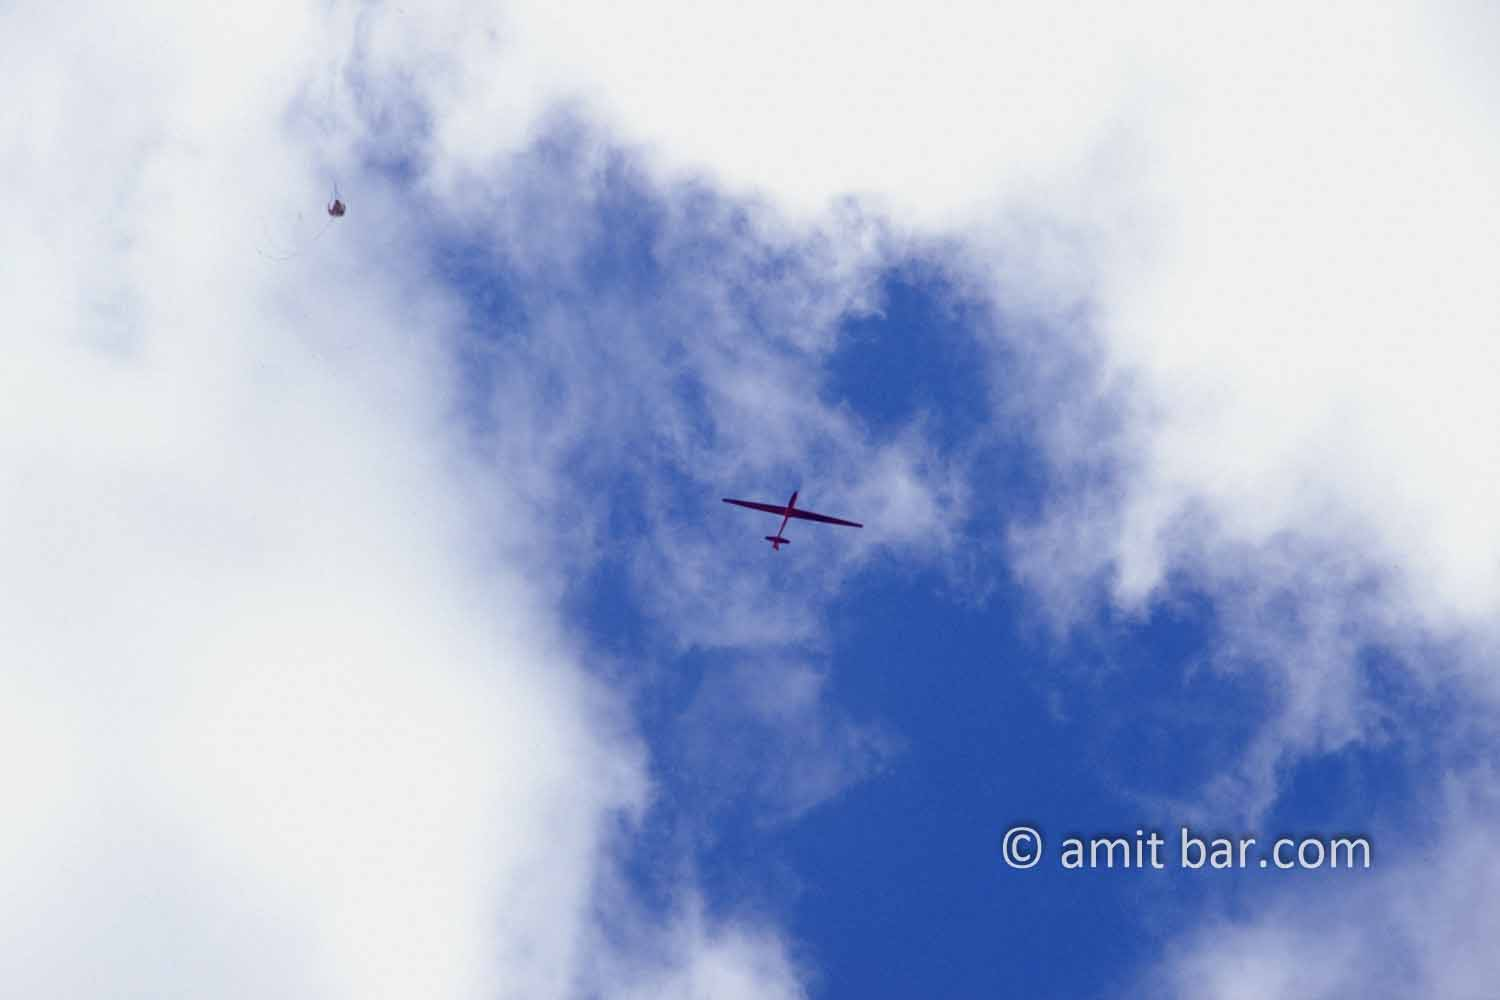 Clouds IV: White clouds and a glider